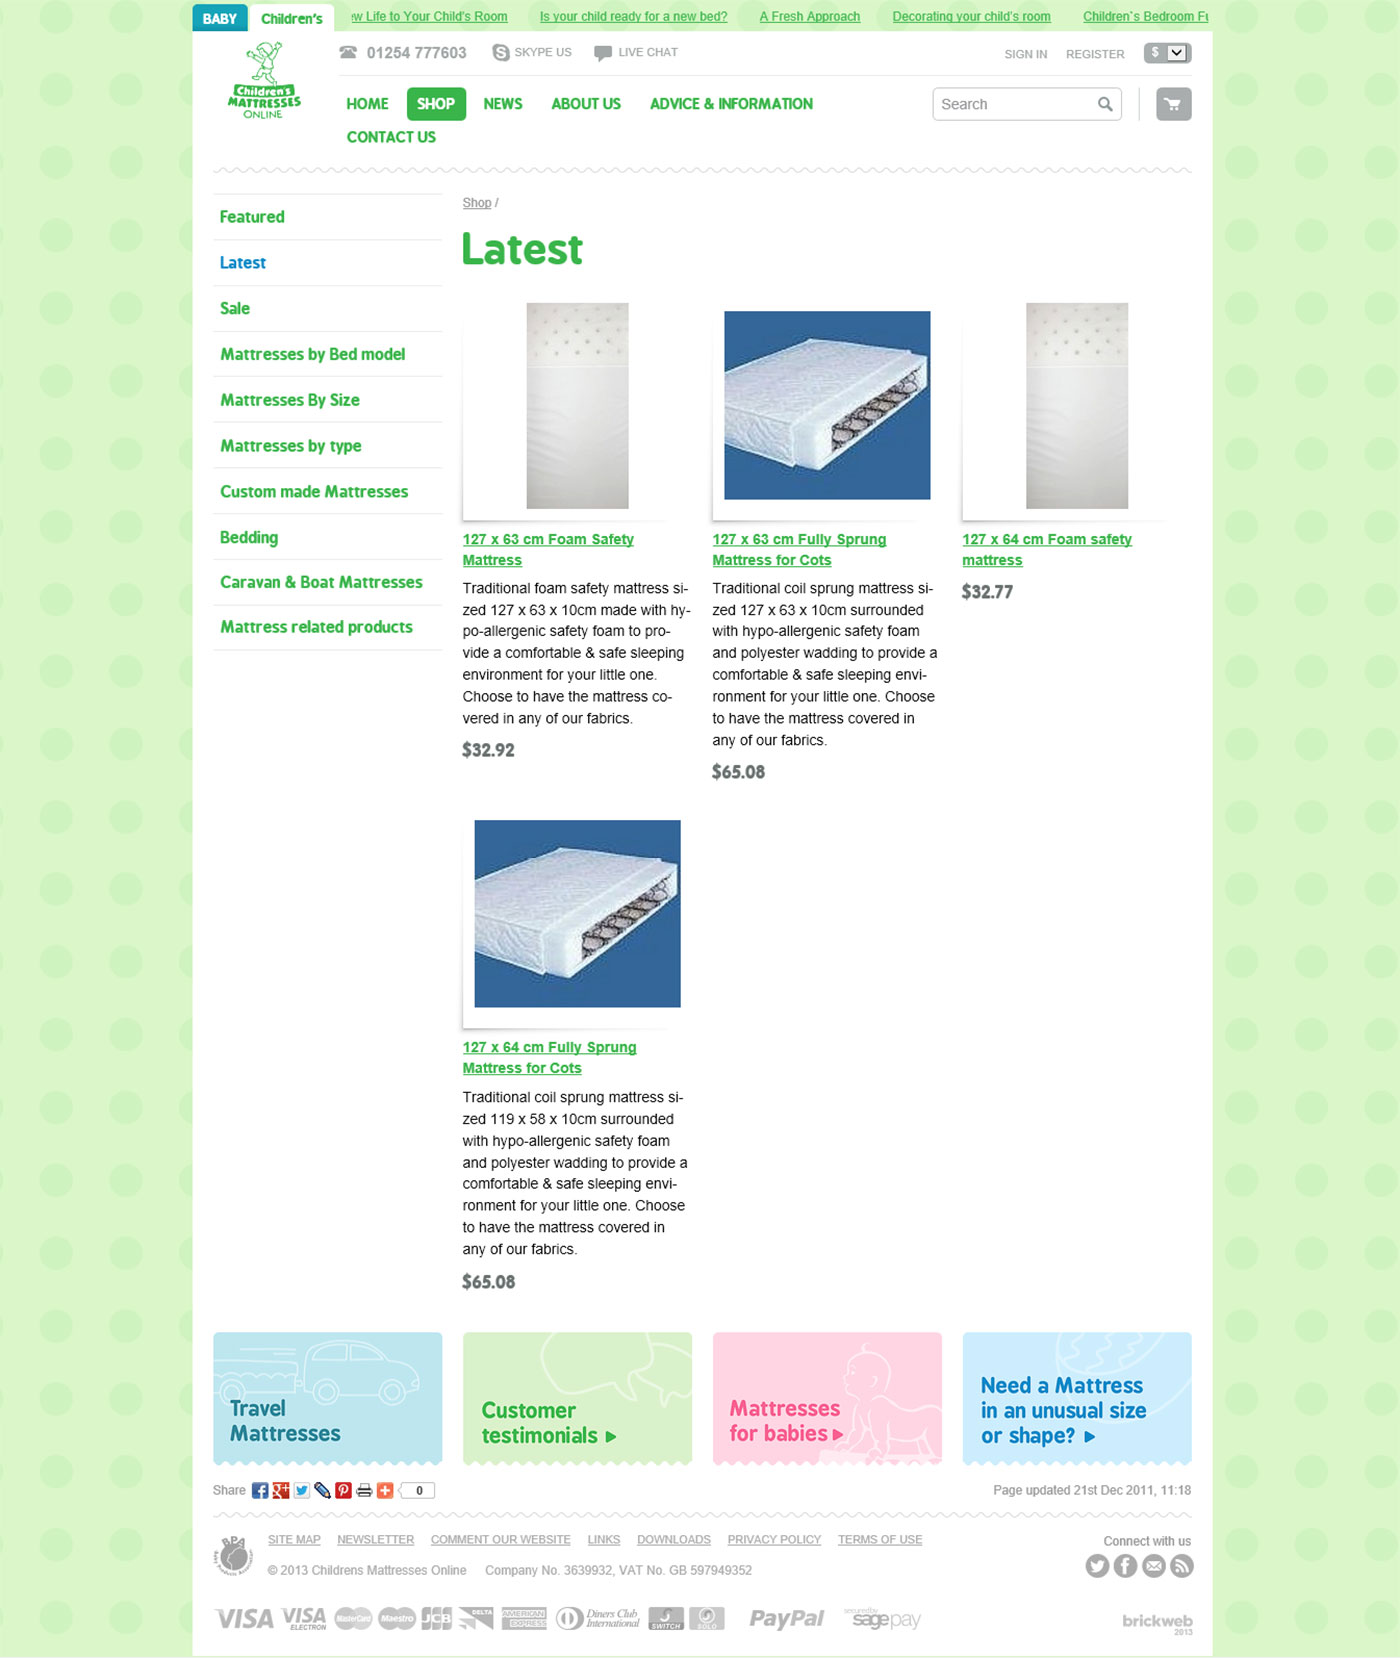 Childrens Mattresses Products page